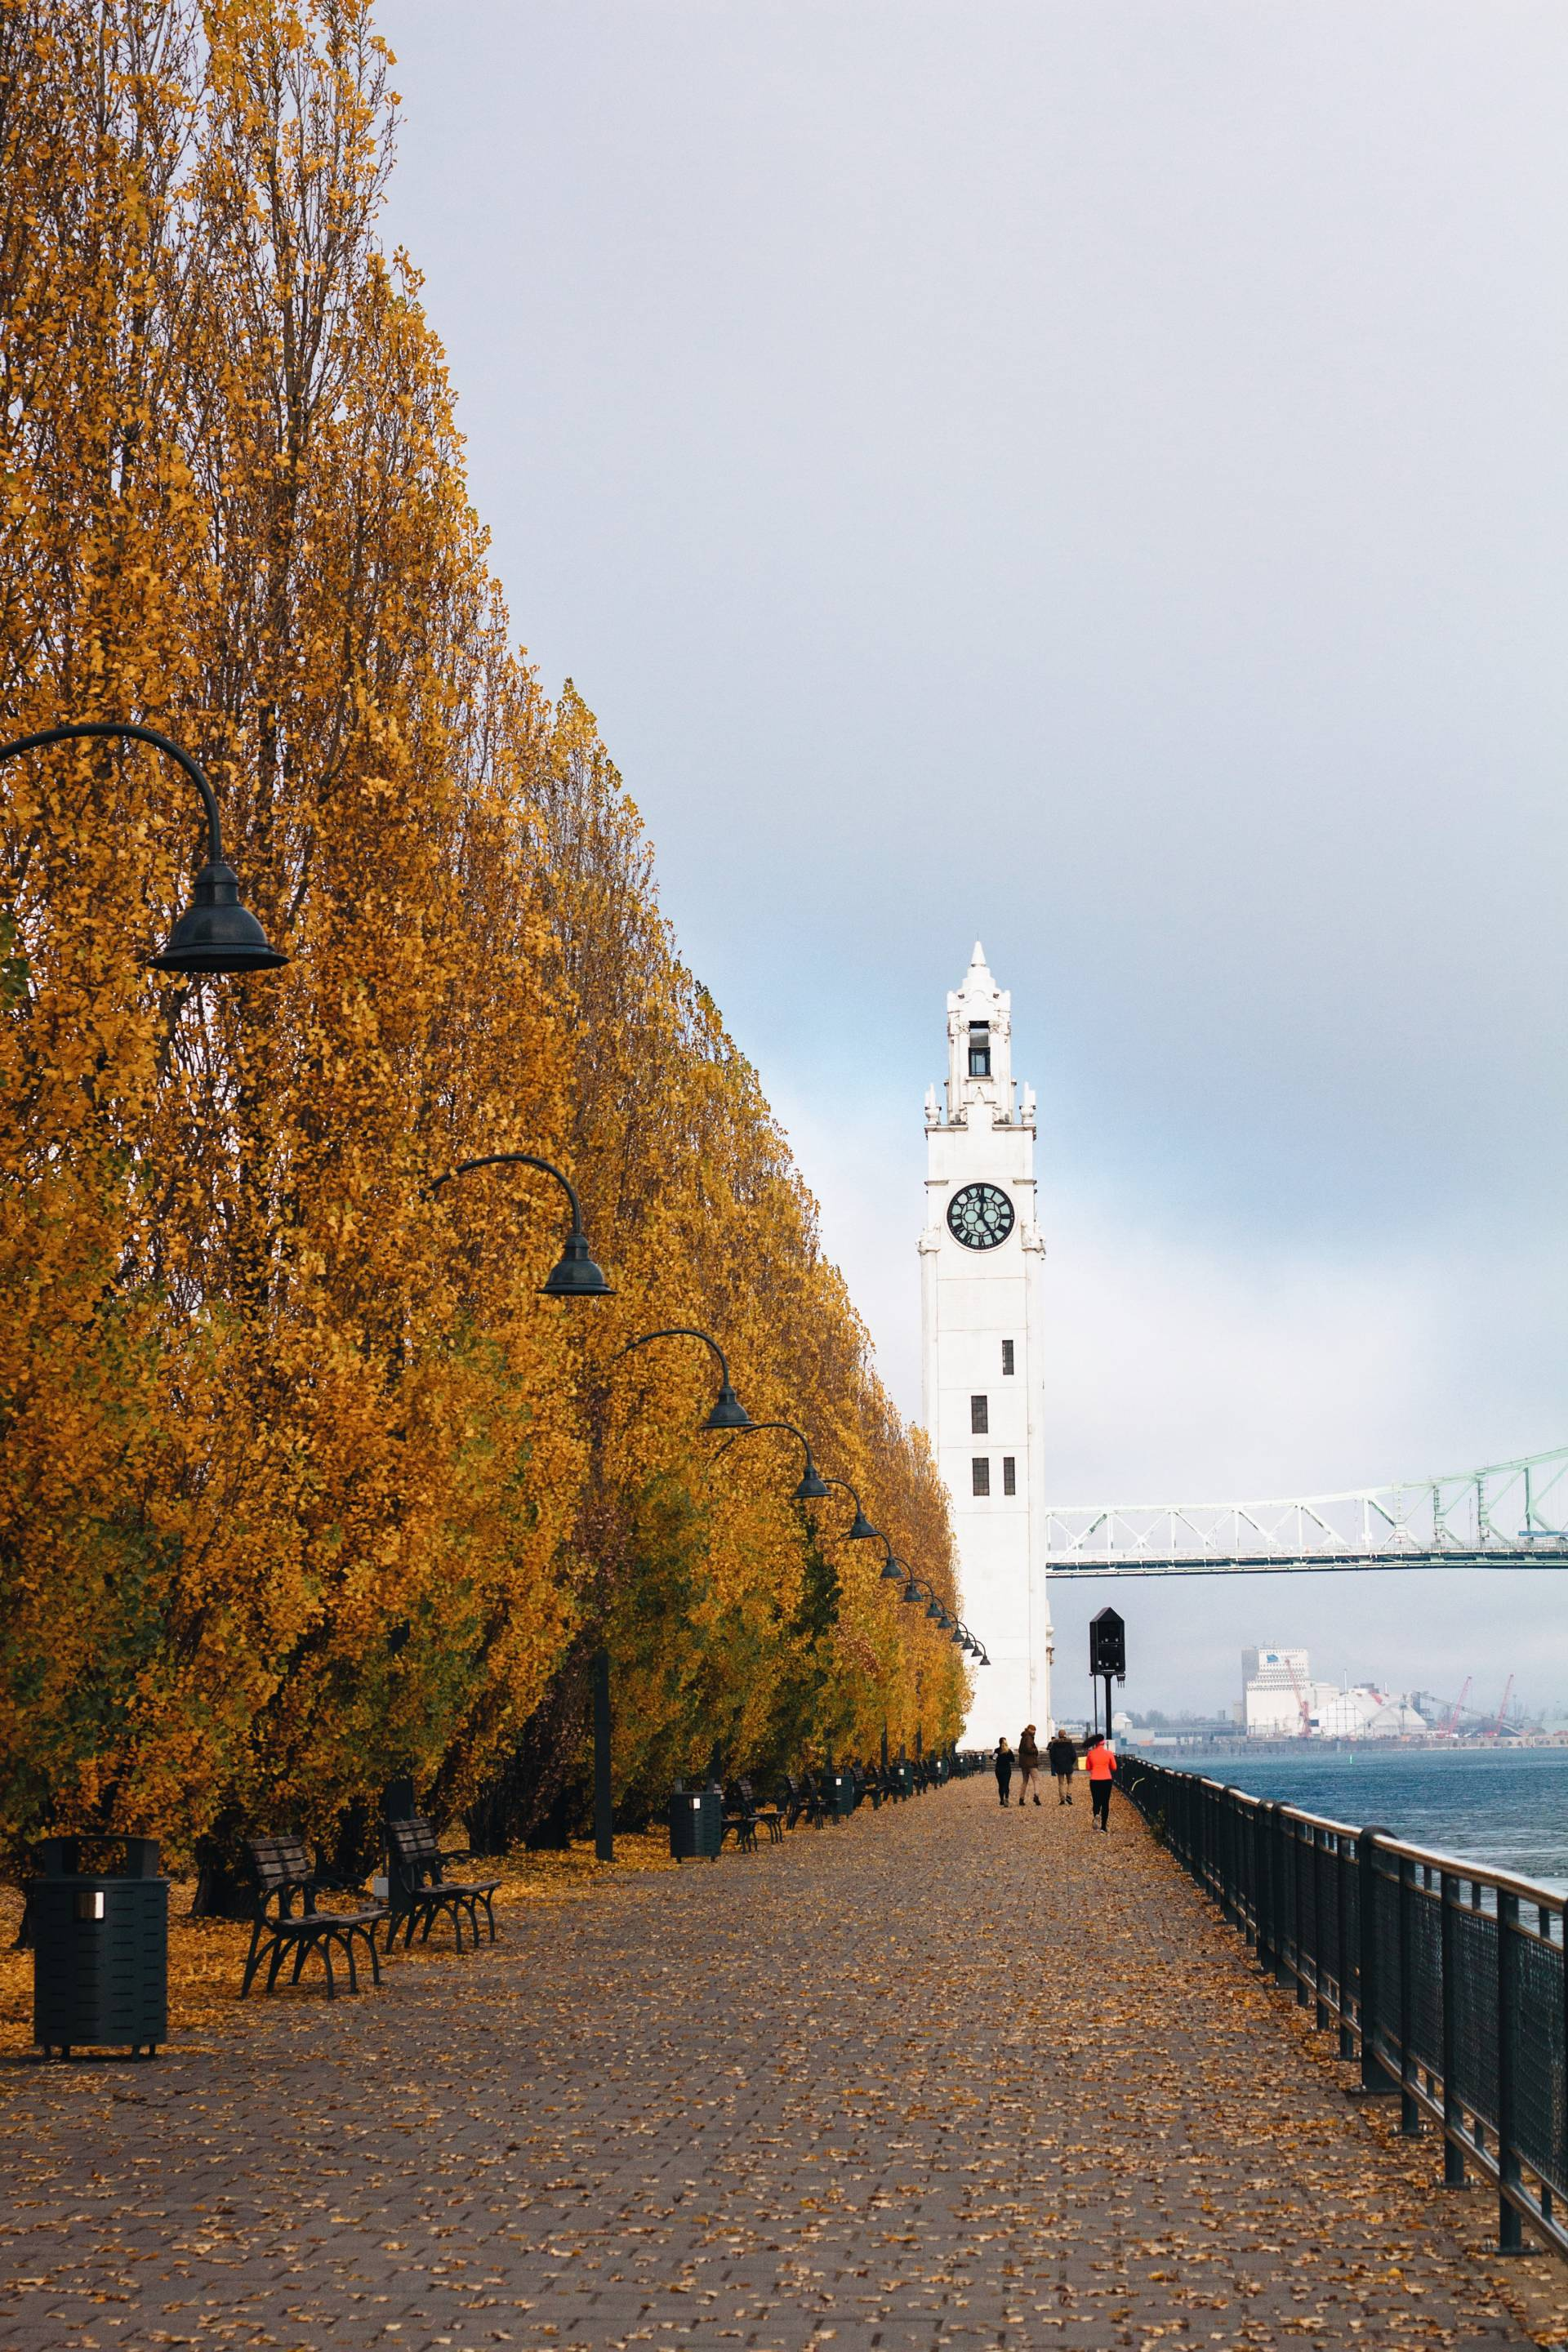 6 Unexpected Locations for a Fall Getaway - #2 Montreal